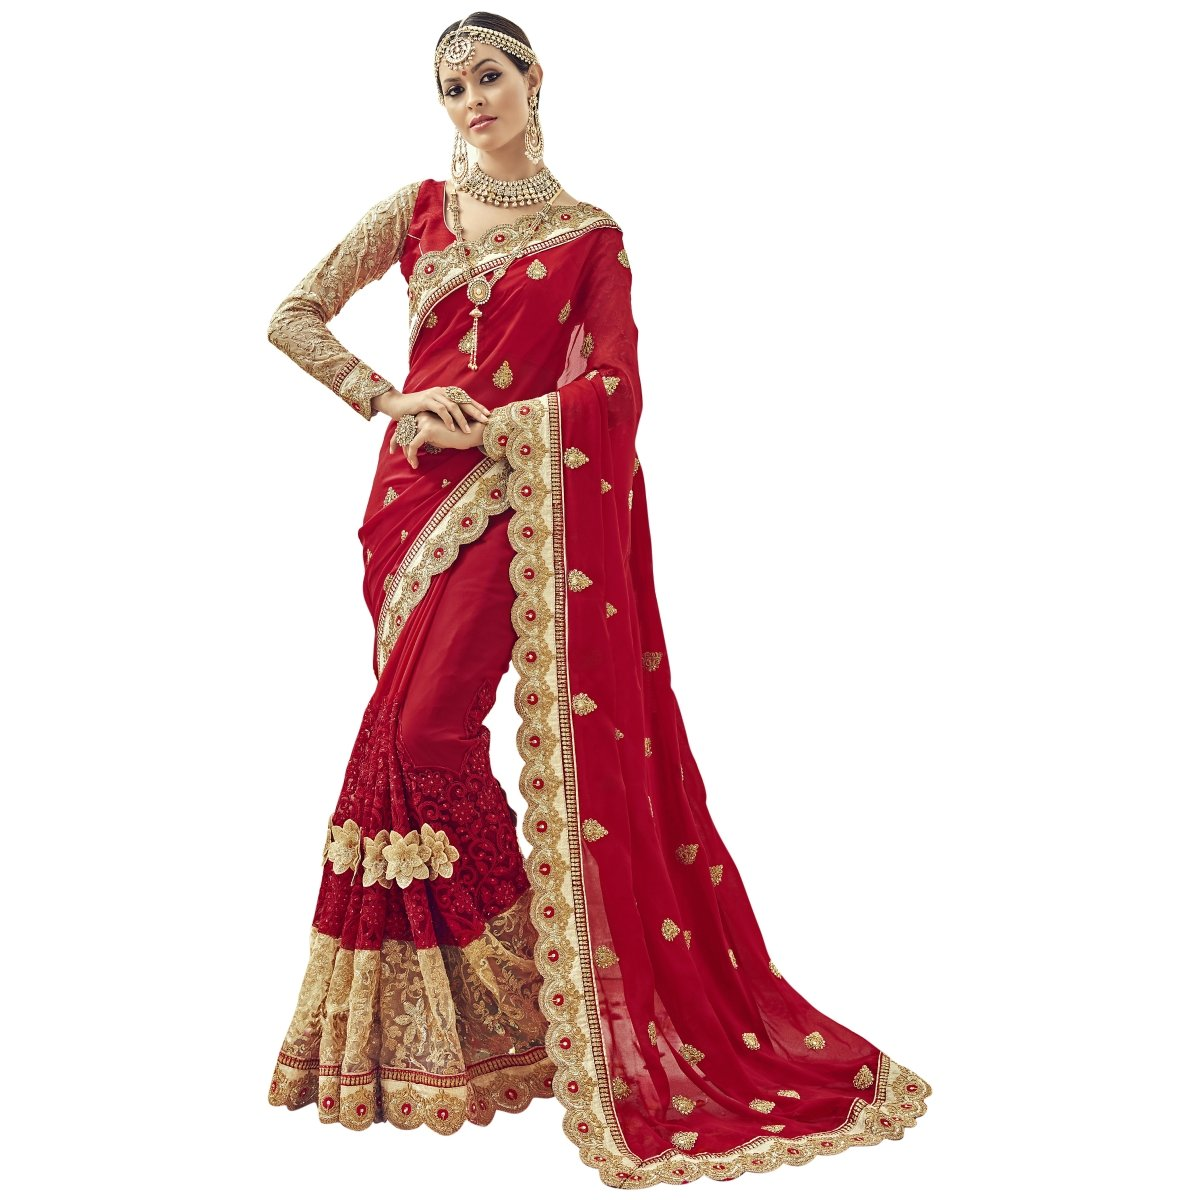 Triveni Women's Indian Red Colored Embroidered Faux Georgette Net Wedding Saree